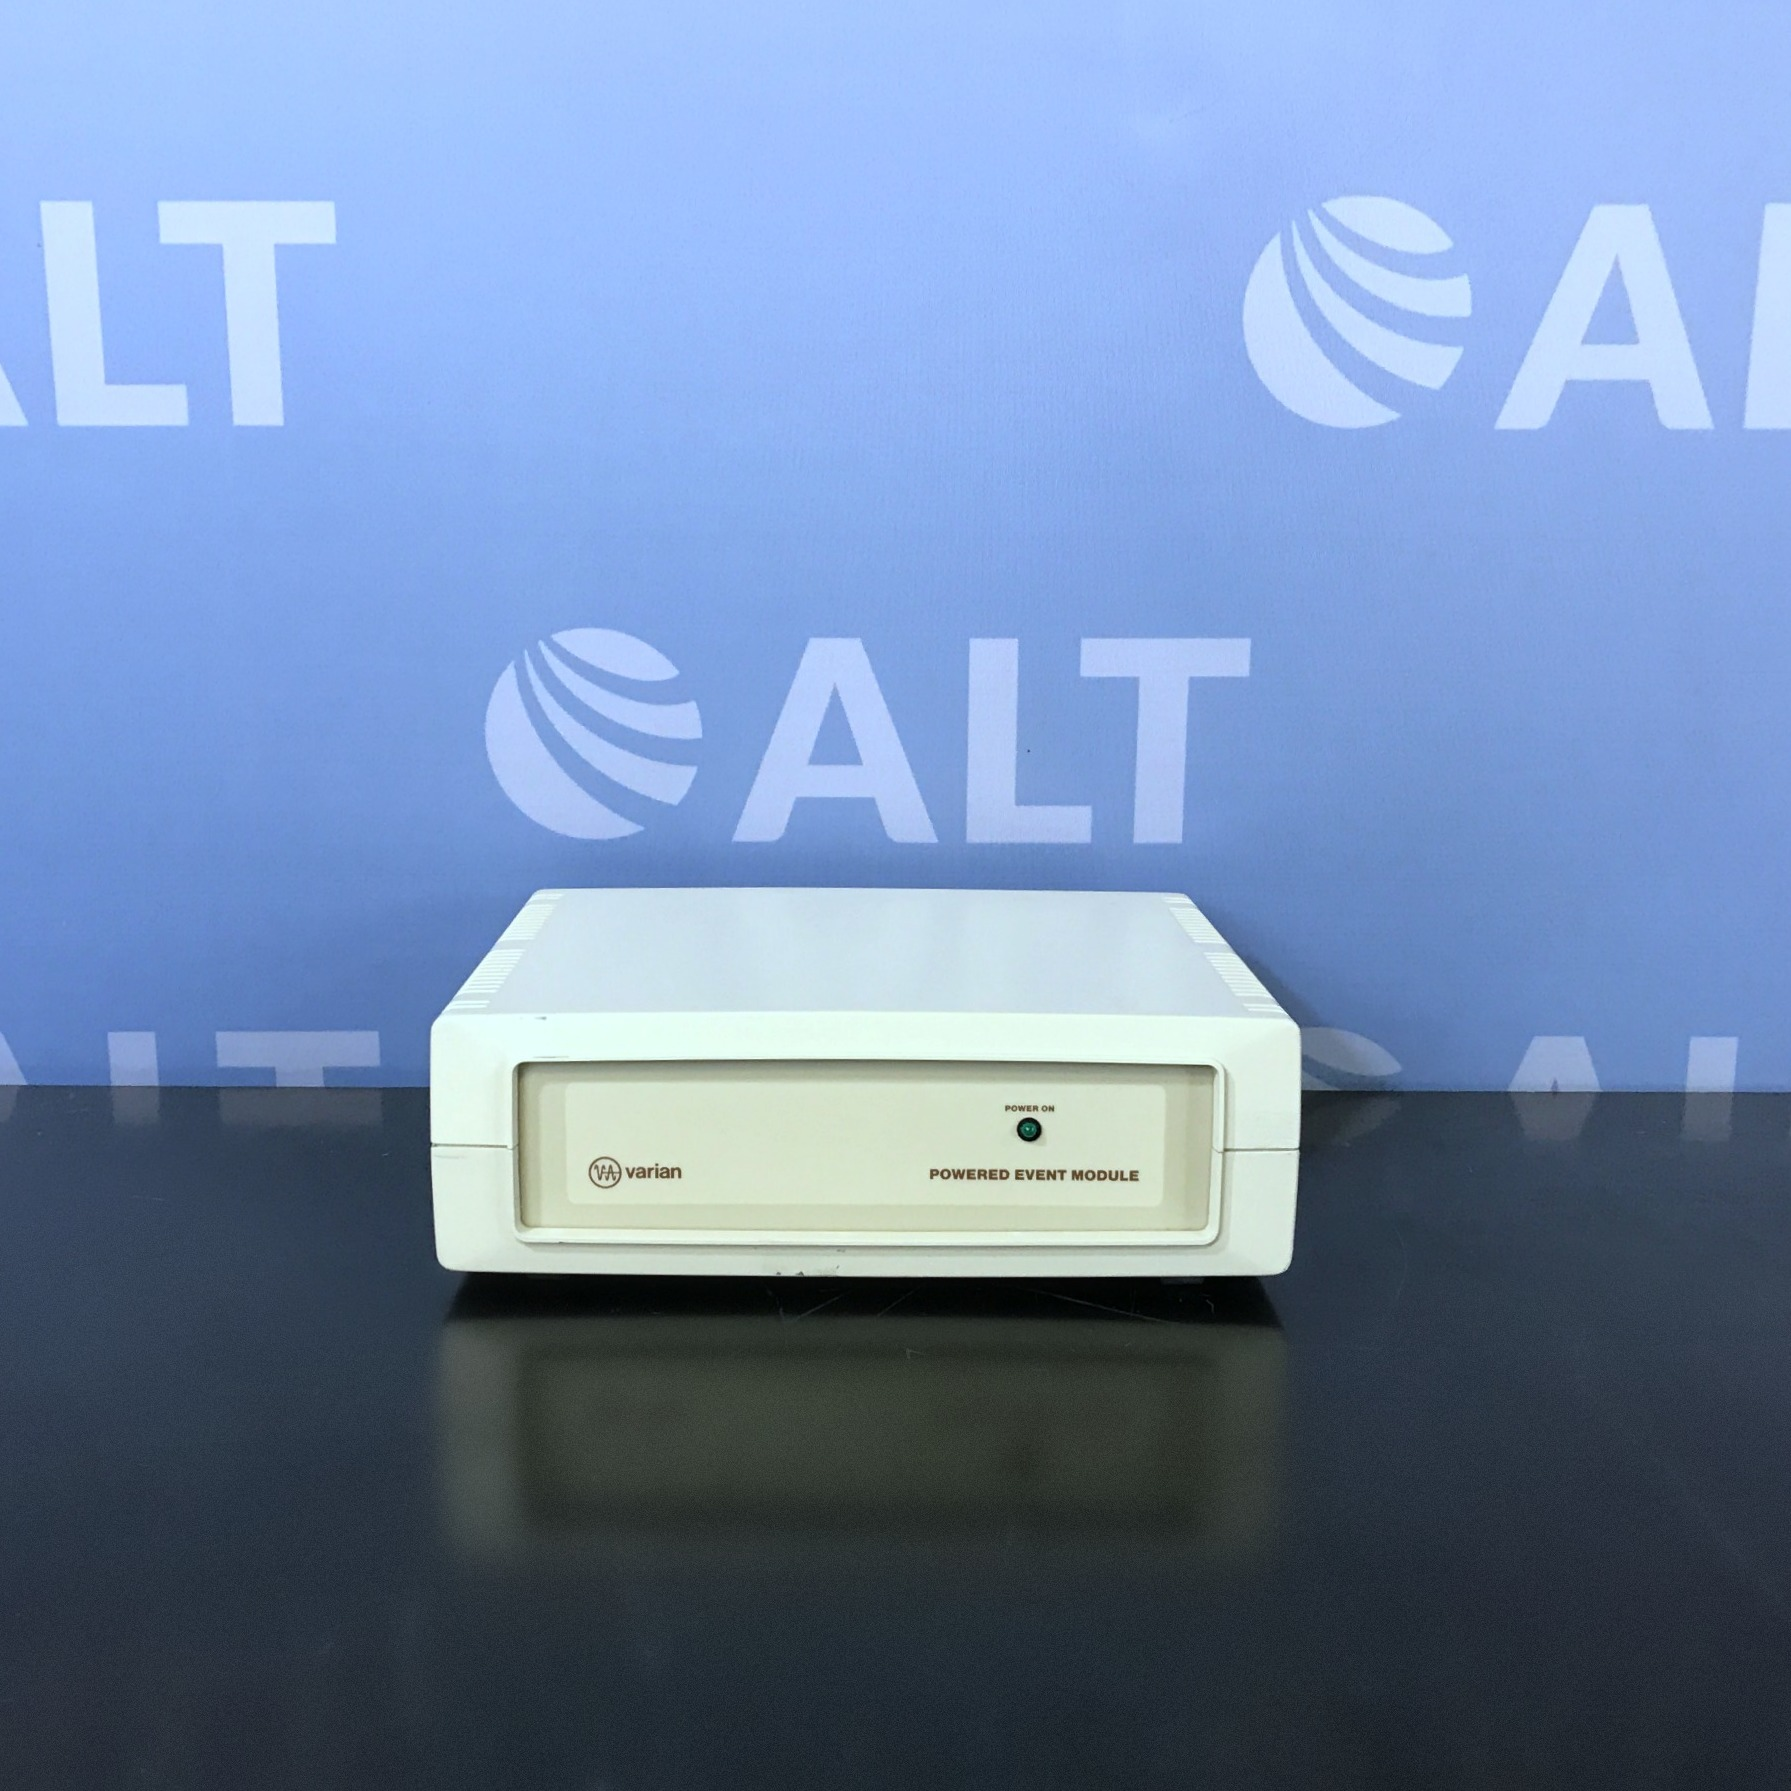 Varian 03-919185-00  Powered Event Module Image